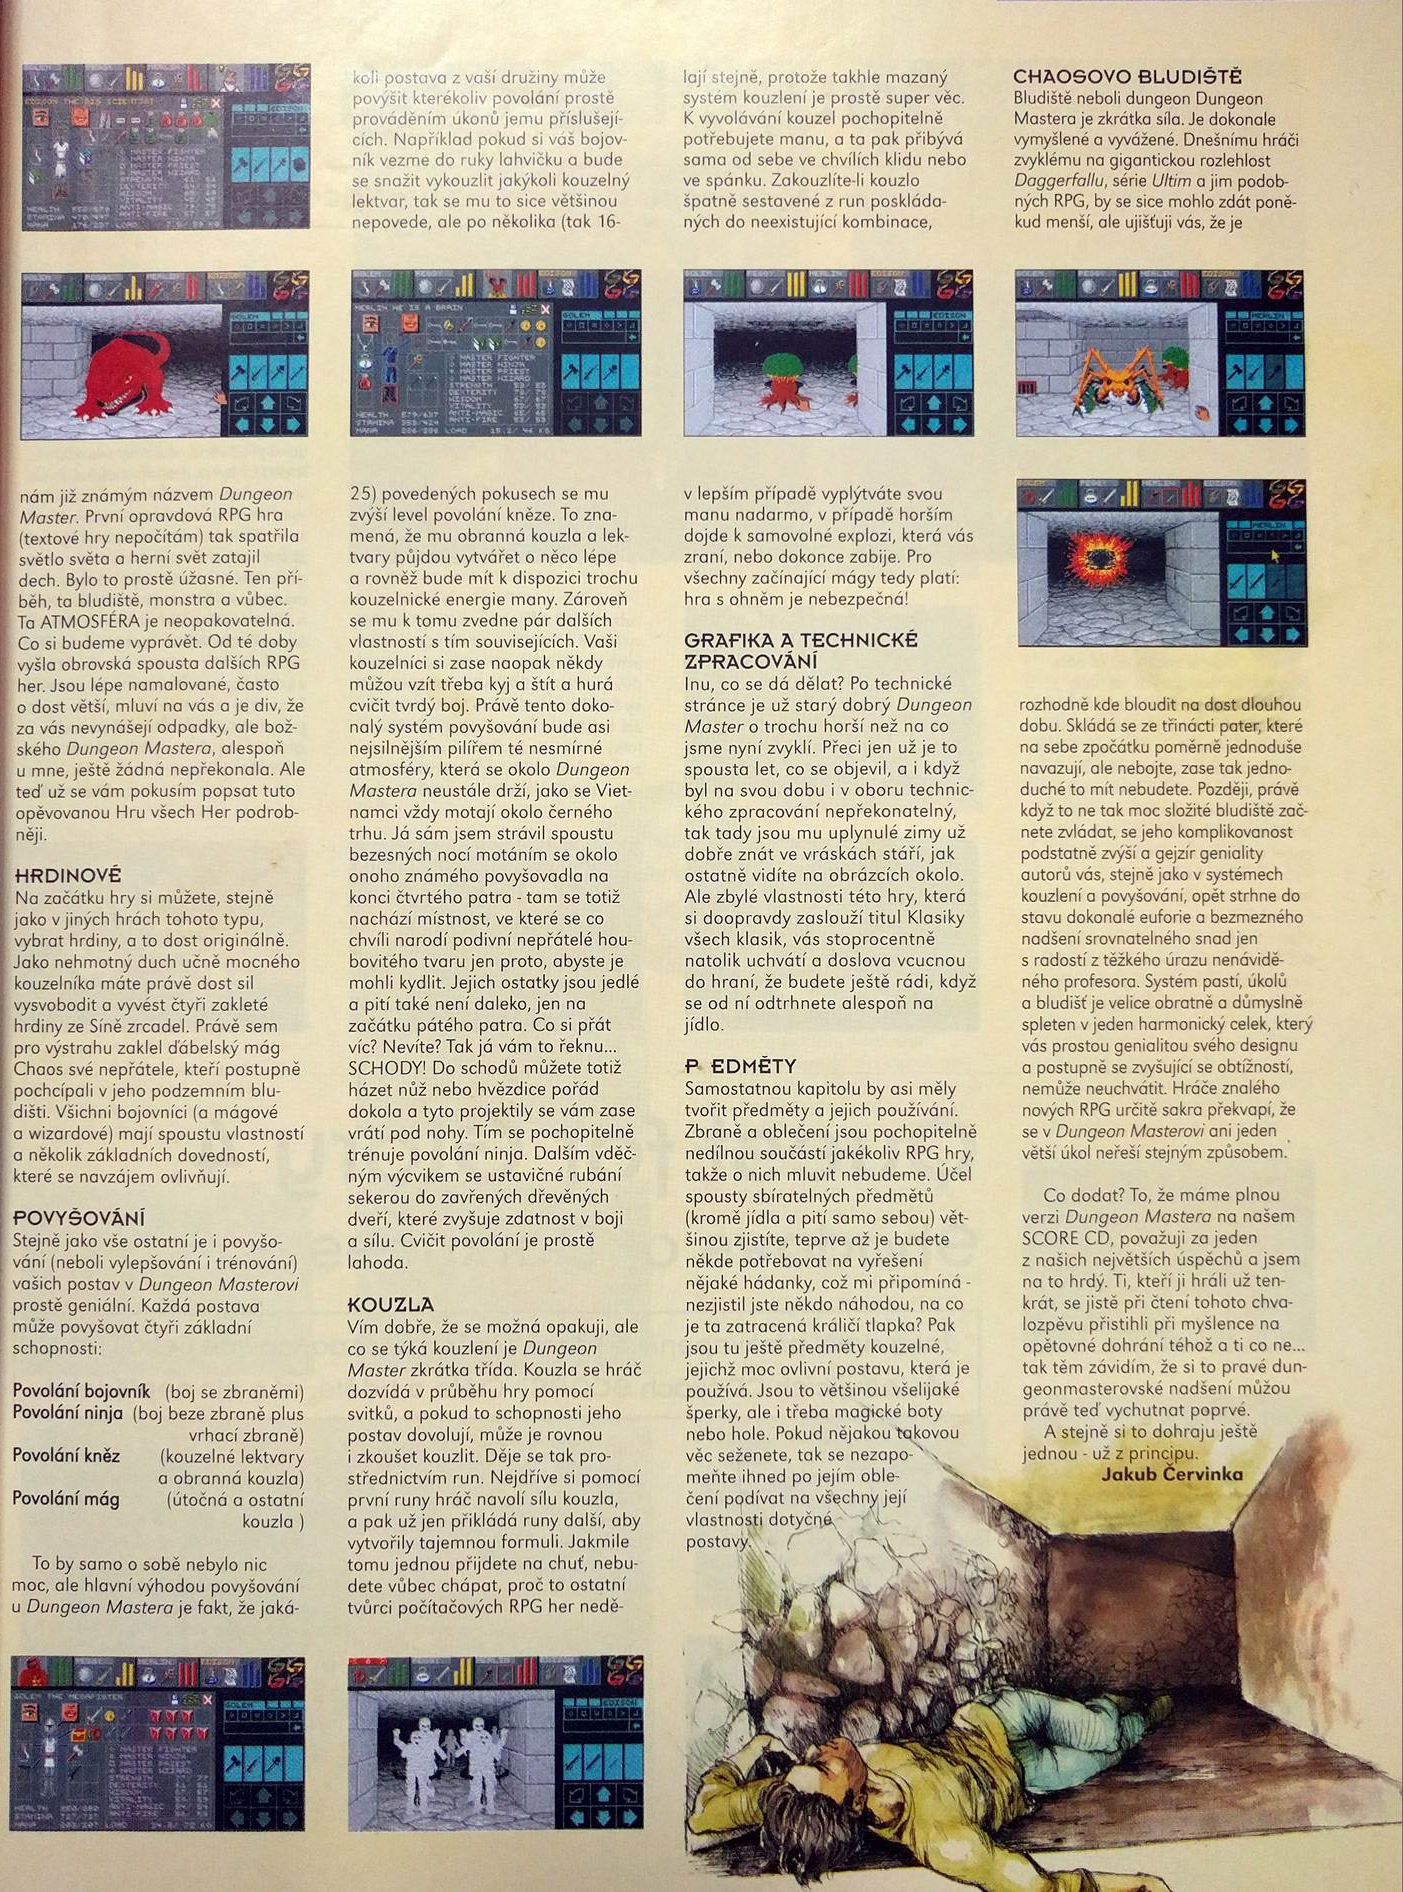 Dungeon Master for PC Article published in Czech magazine 'Score', Issue #62 February 1999, Page 9